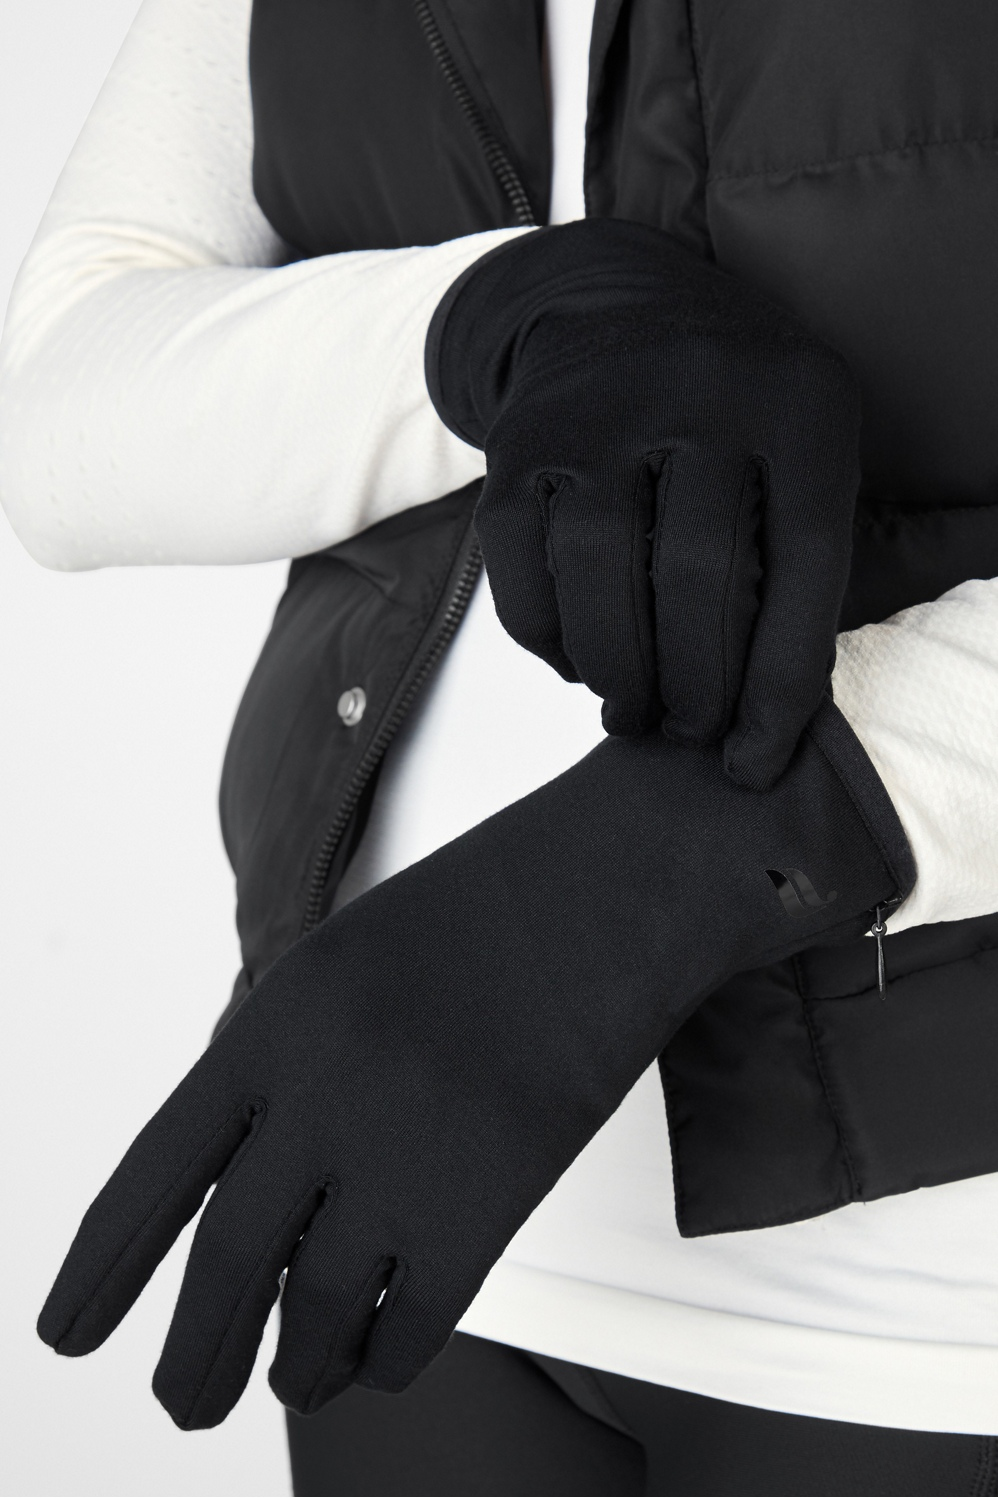 Keep your paws warm in our super-soft fleece gloves with stylish button closures.